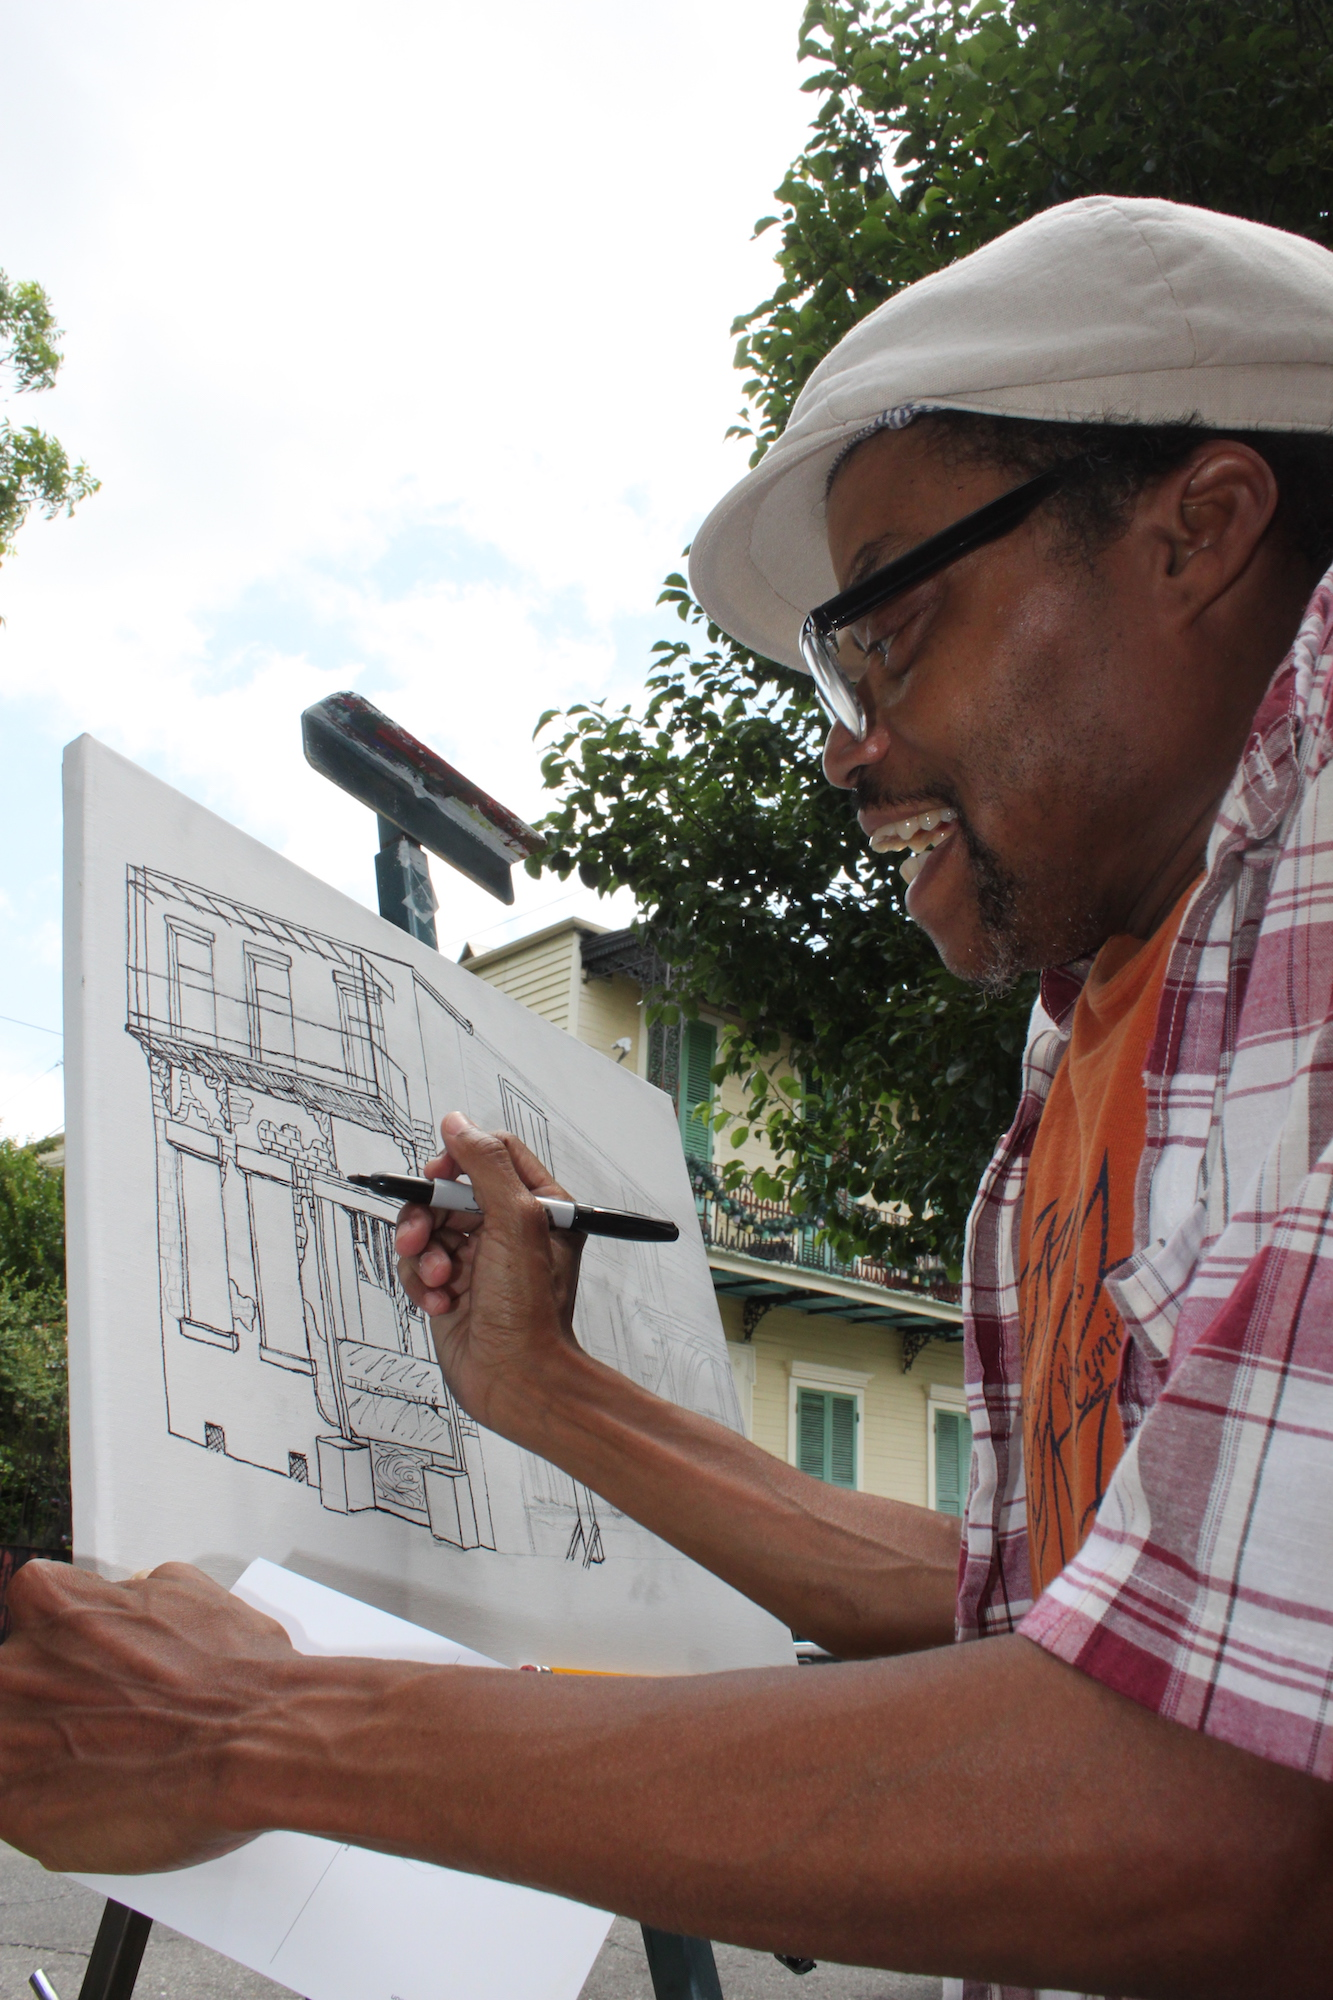 "Keith Duncan; Photography by H. Hickman  In May 2015, local artists Katrina Andry, Ron Bechet, Amy Bryant, Jer'Lisa Devezin, Keith Duncan, Horton Humble, and Varion Laurent engaged in a ""Live Action Painting"" of portraits of blighted houses. This quiet event unfurled without PR attention—it was a humble opportunity for artists to engage in dialogue with residents and meditate on the sensory experience of blight. The event took place soon after the City of New Orleans placed several hundred blighted properties up for auction; housing rights advocates and neighbors alike feared that the auction would lead to a land grab and bloodletting of rapidly gentrifying neighborhoods like New Orleans' historic 6th Ward. Residents reported non-local white folks ""swarming"" the neighborhood with cameras. Blights Out was interested in carefully navigating the delicate situation, strategically bringing only local Black artists to paint plein air and engage in candid conversation about the changing neighborhood. The decision to invite only Black artists was controversial amongst our participants and generated a meaningful discussion about race relations, gentrification, and public perception."